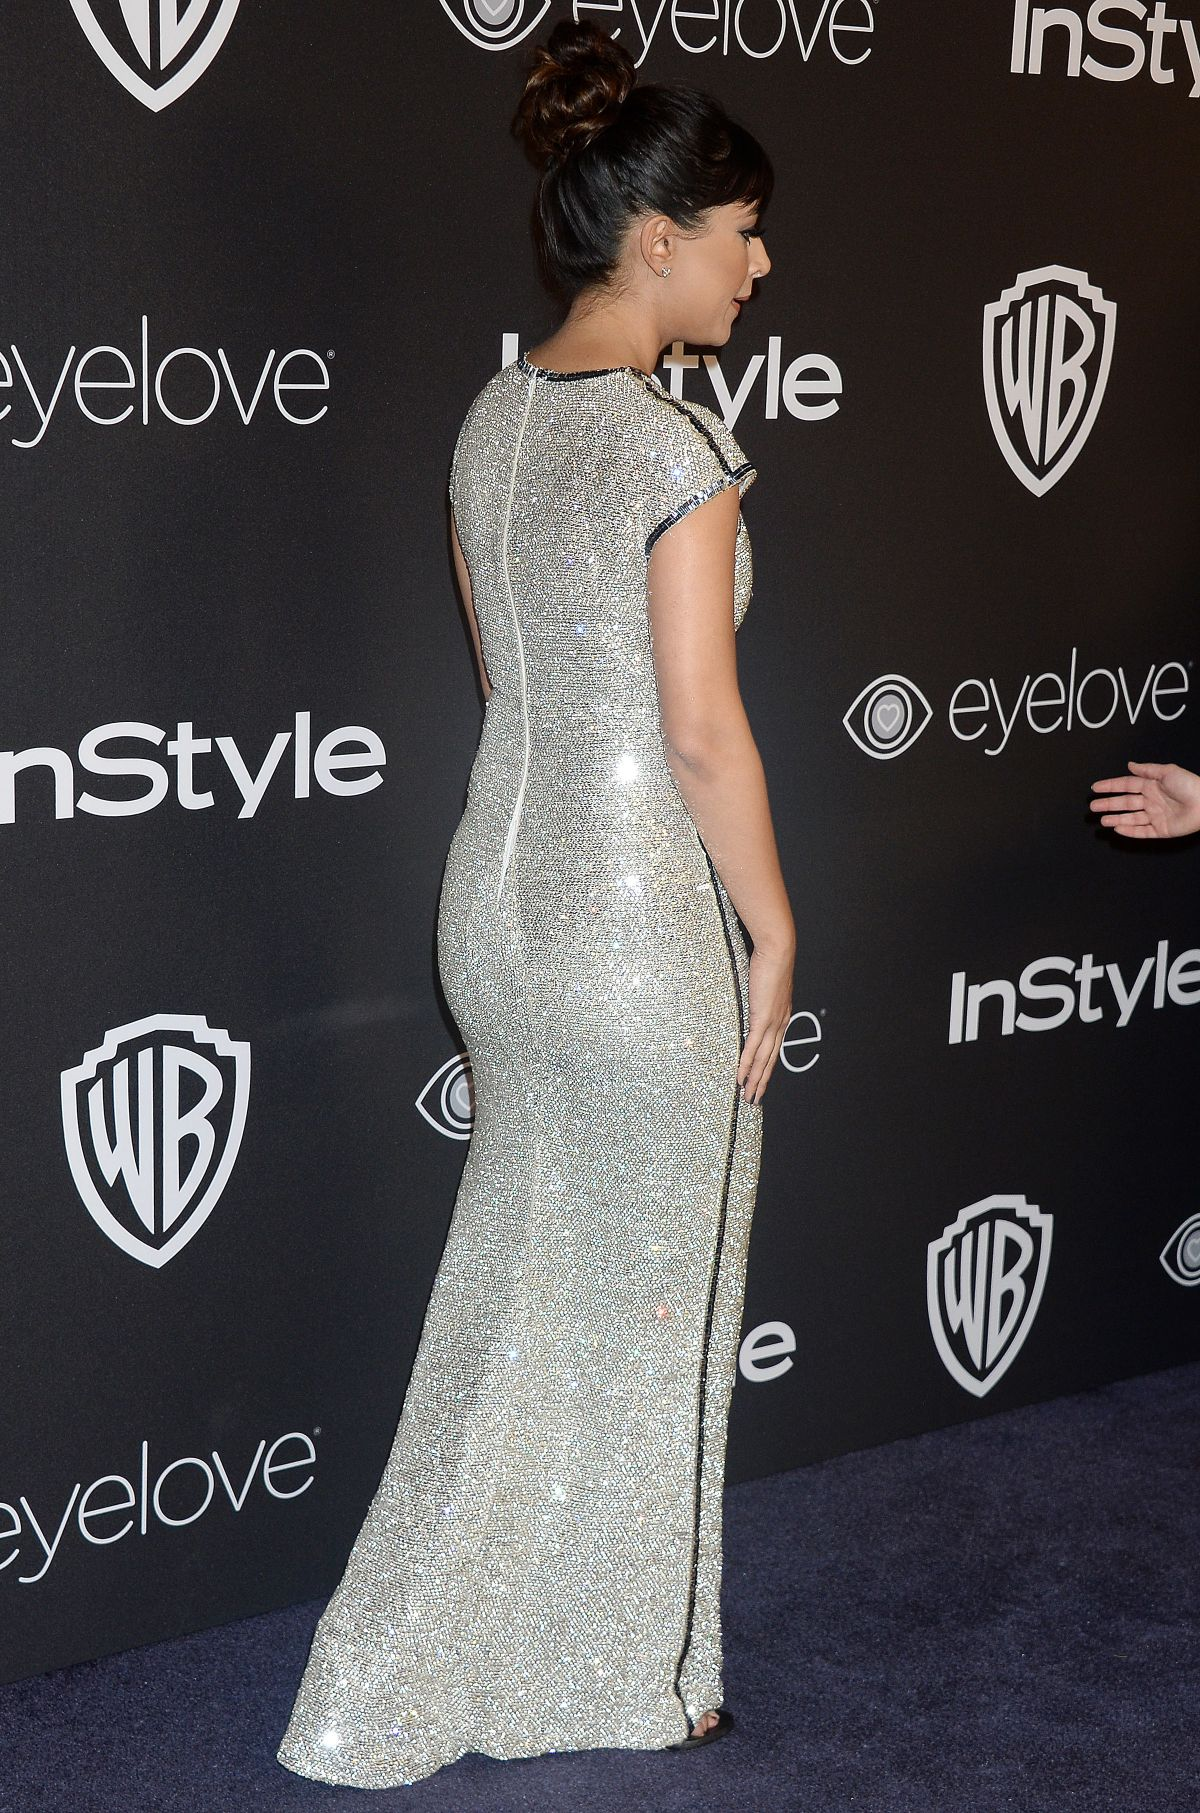 HANNAH SIMONE at Warner Bros. Pictures & Instyle's 18th Annual Golden Globes Party in Beverly Hills 01/08/2017